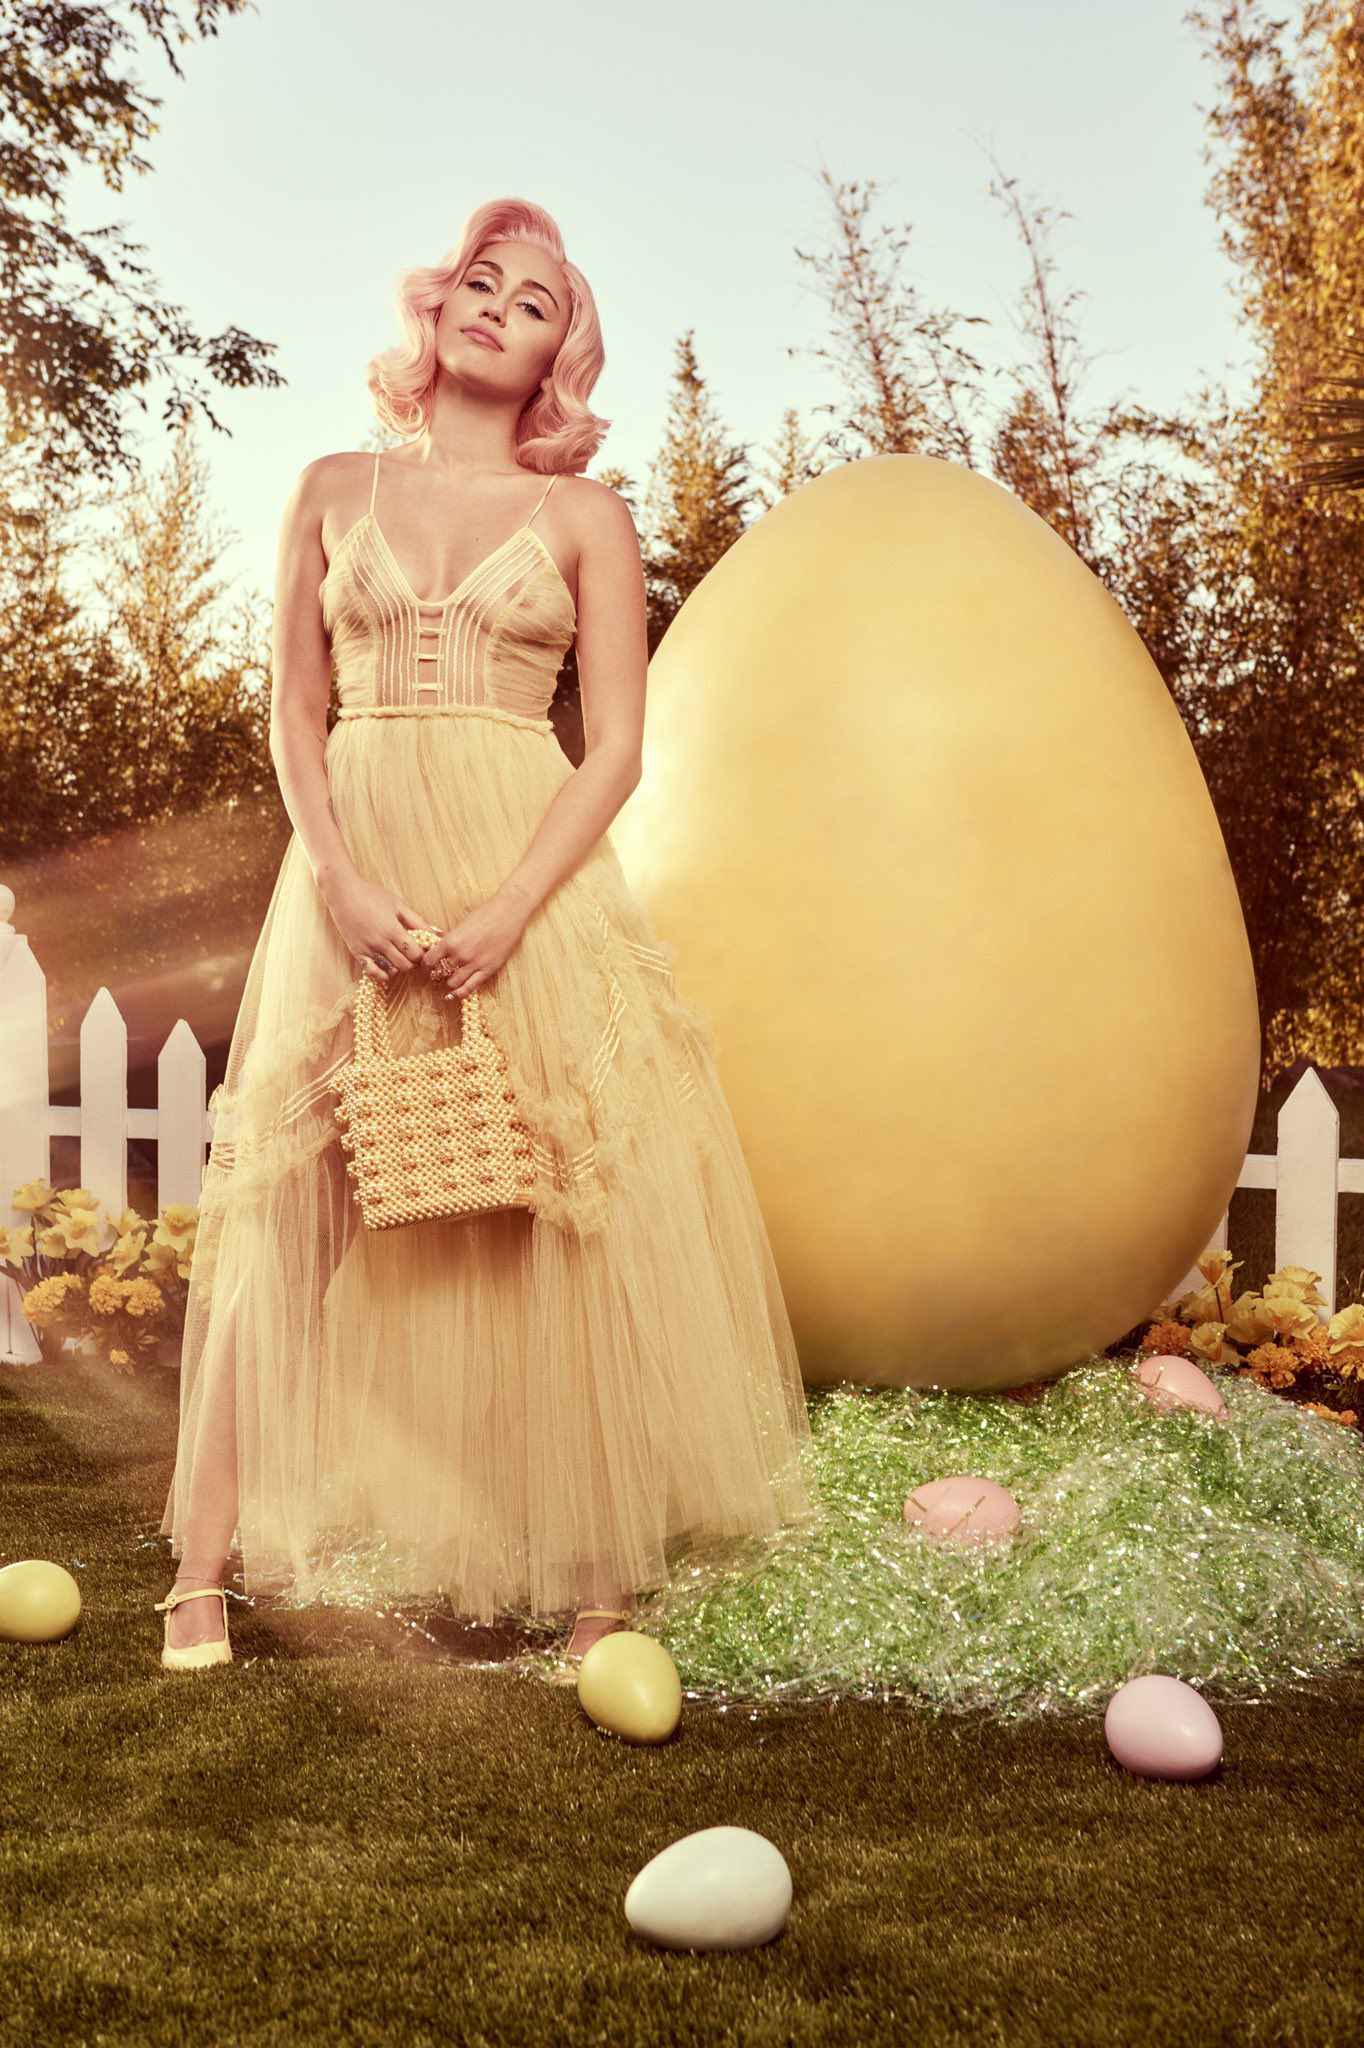 miley-cyrus-see-thru-to-nips-easter-photoshoot-2018-8025